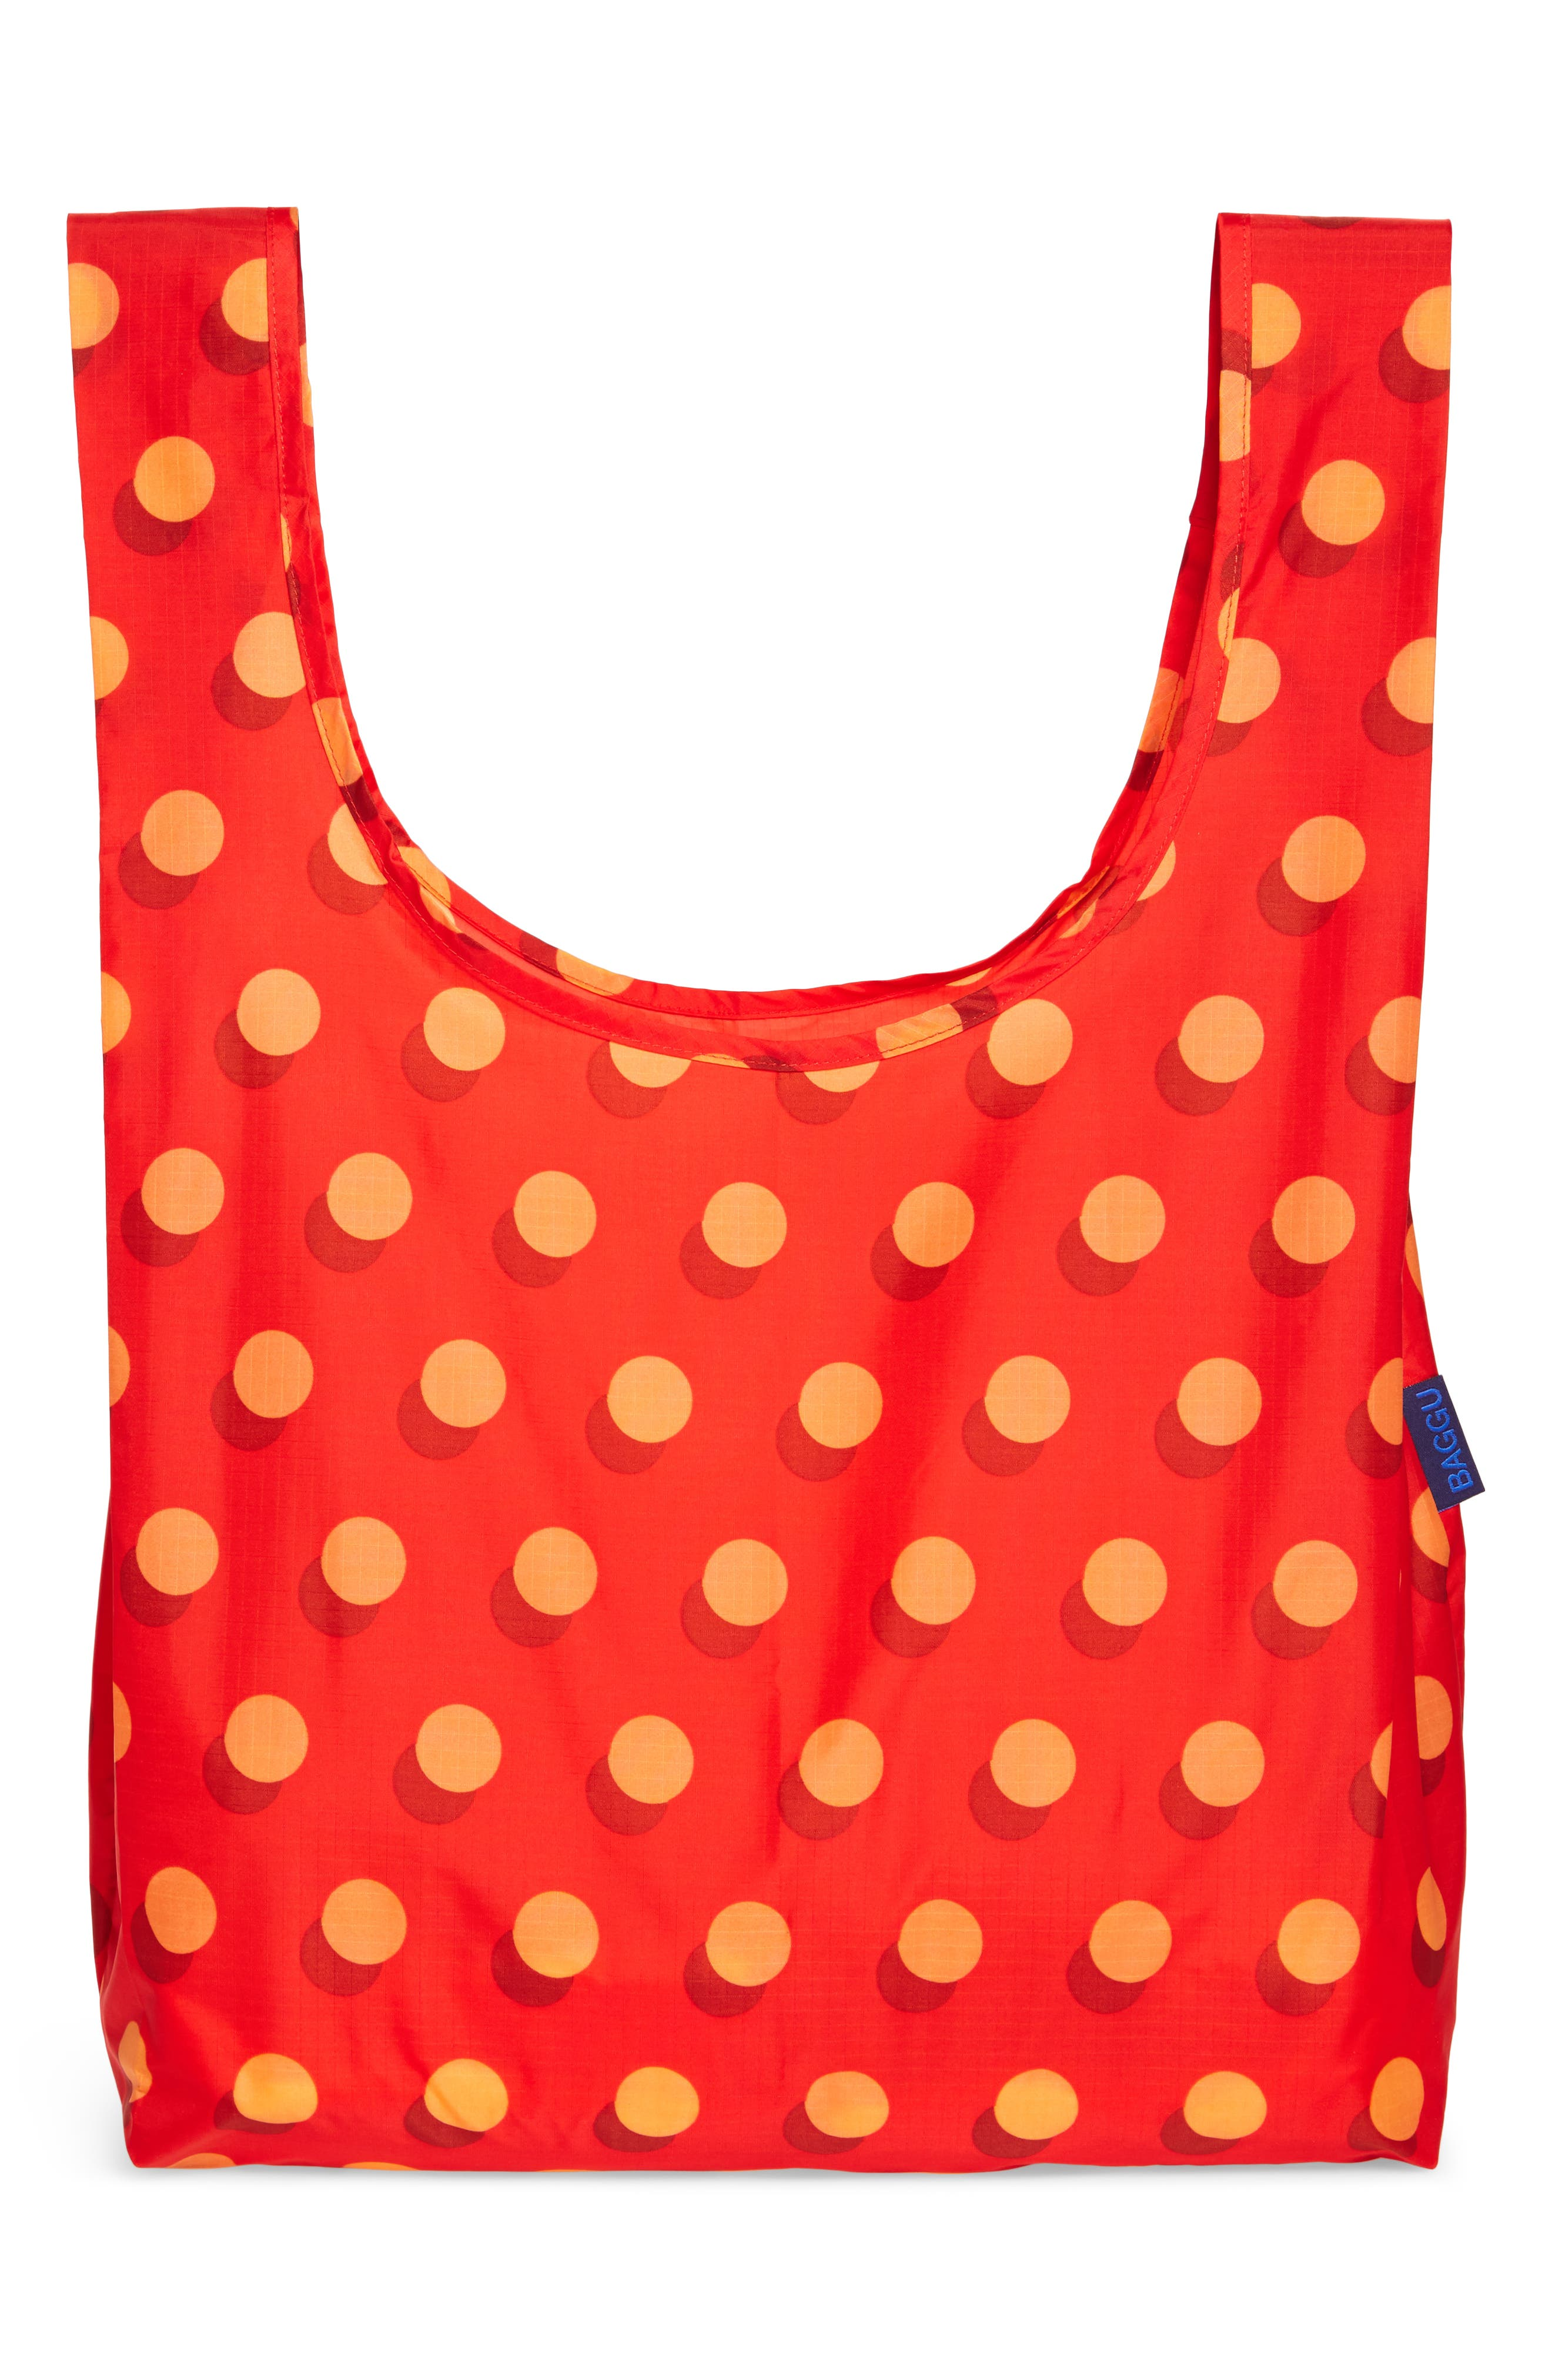 Disco Dot Set of 3 Nylon Totes,                             Alternate thumbnail 3, color,                             600